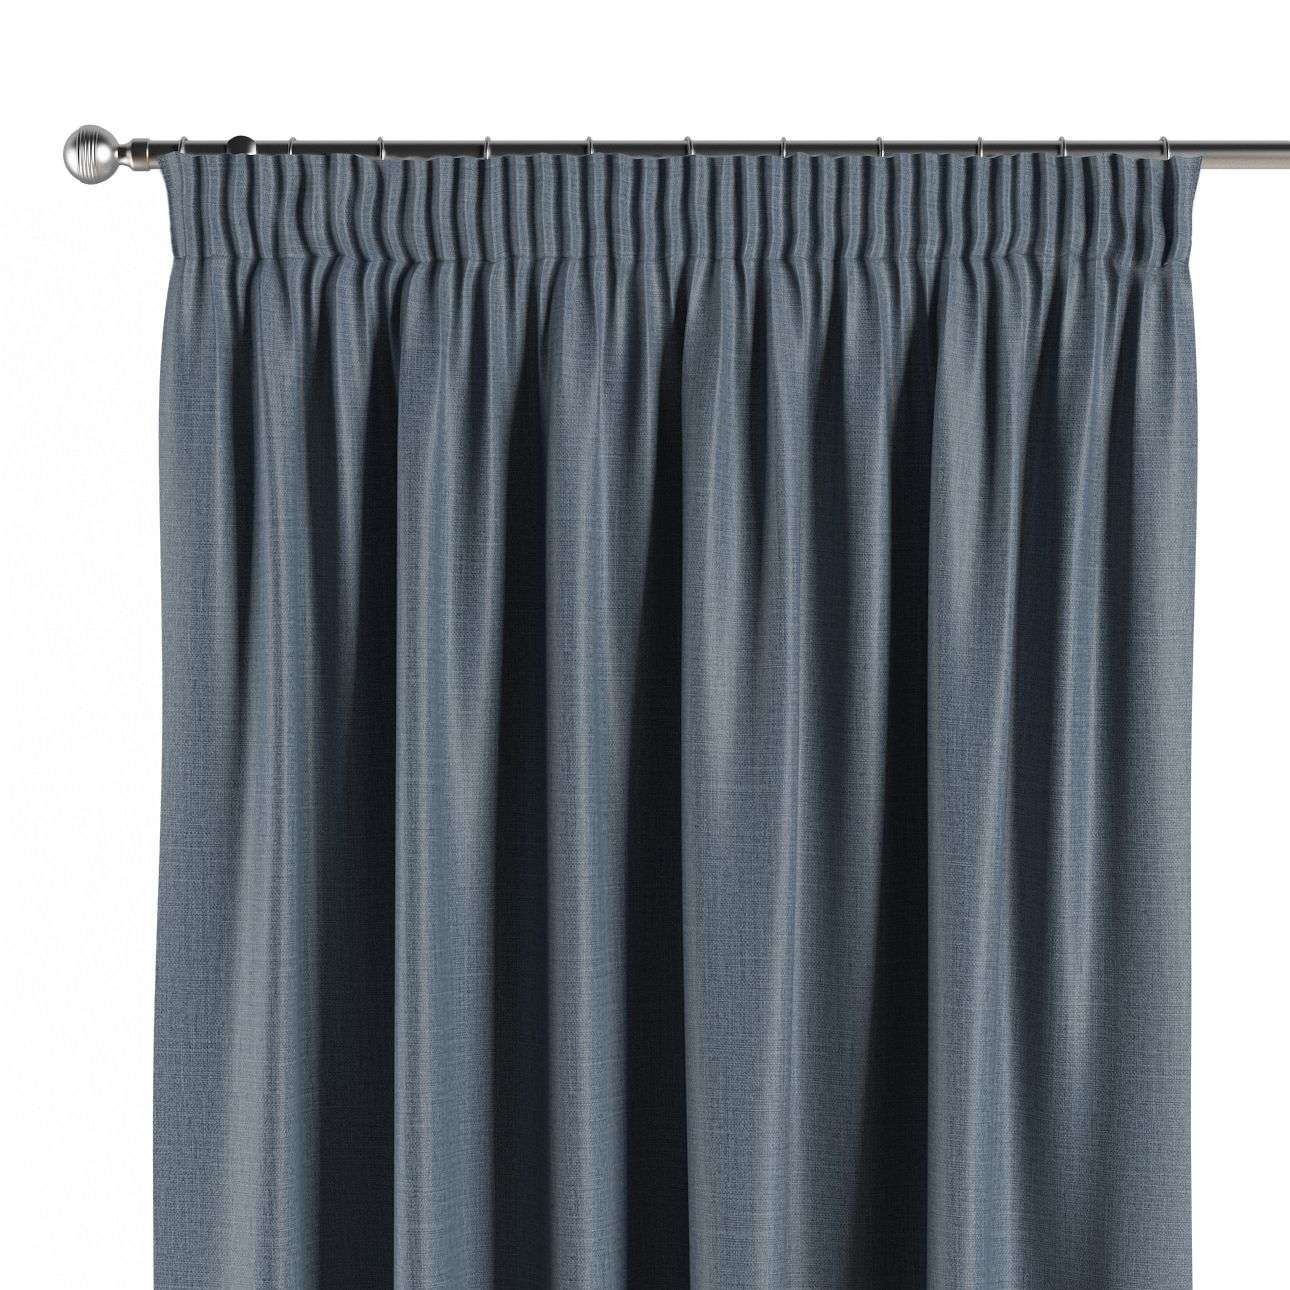 Blackout Pencil Pleat Curtains 140 X 260 Cm Approx 55 102 Inch